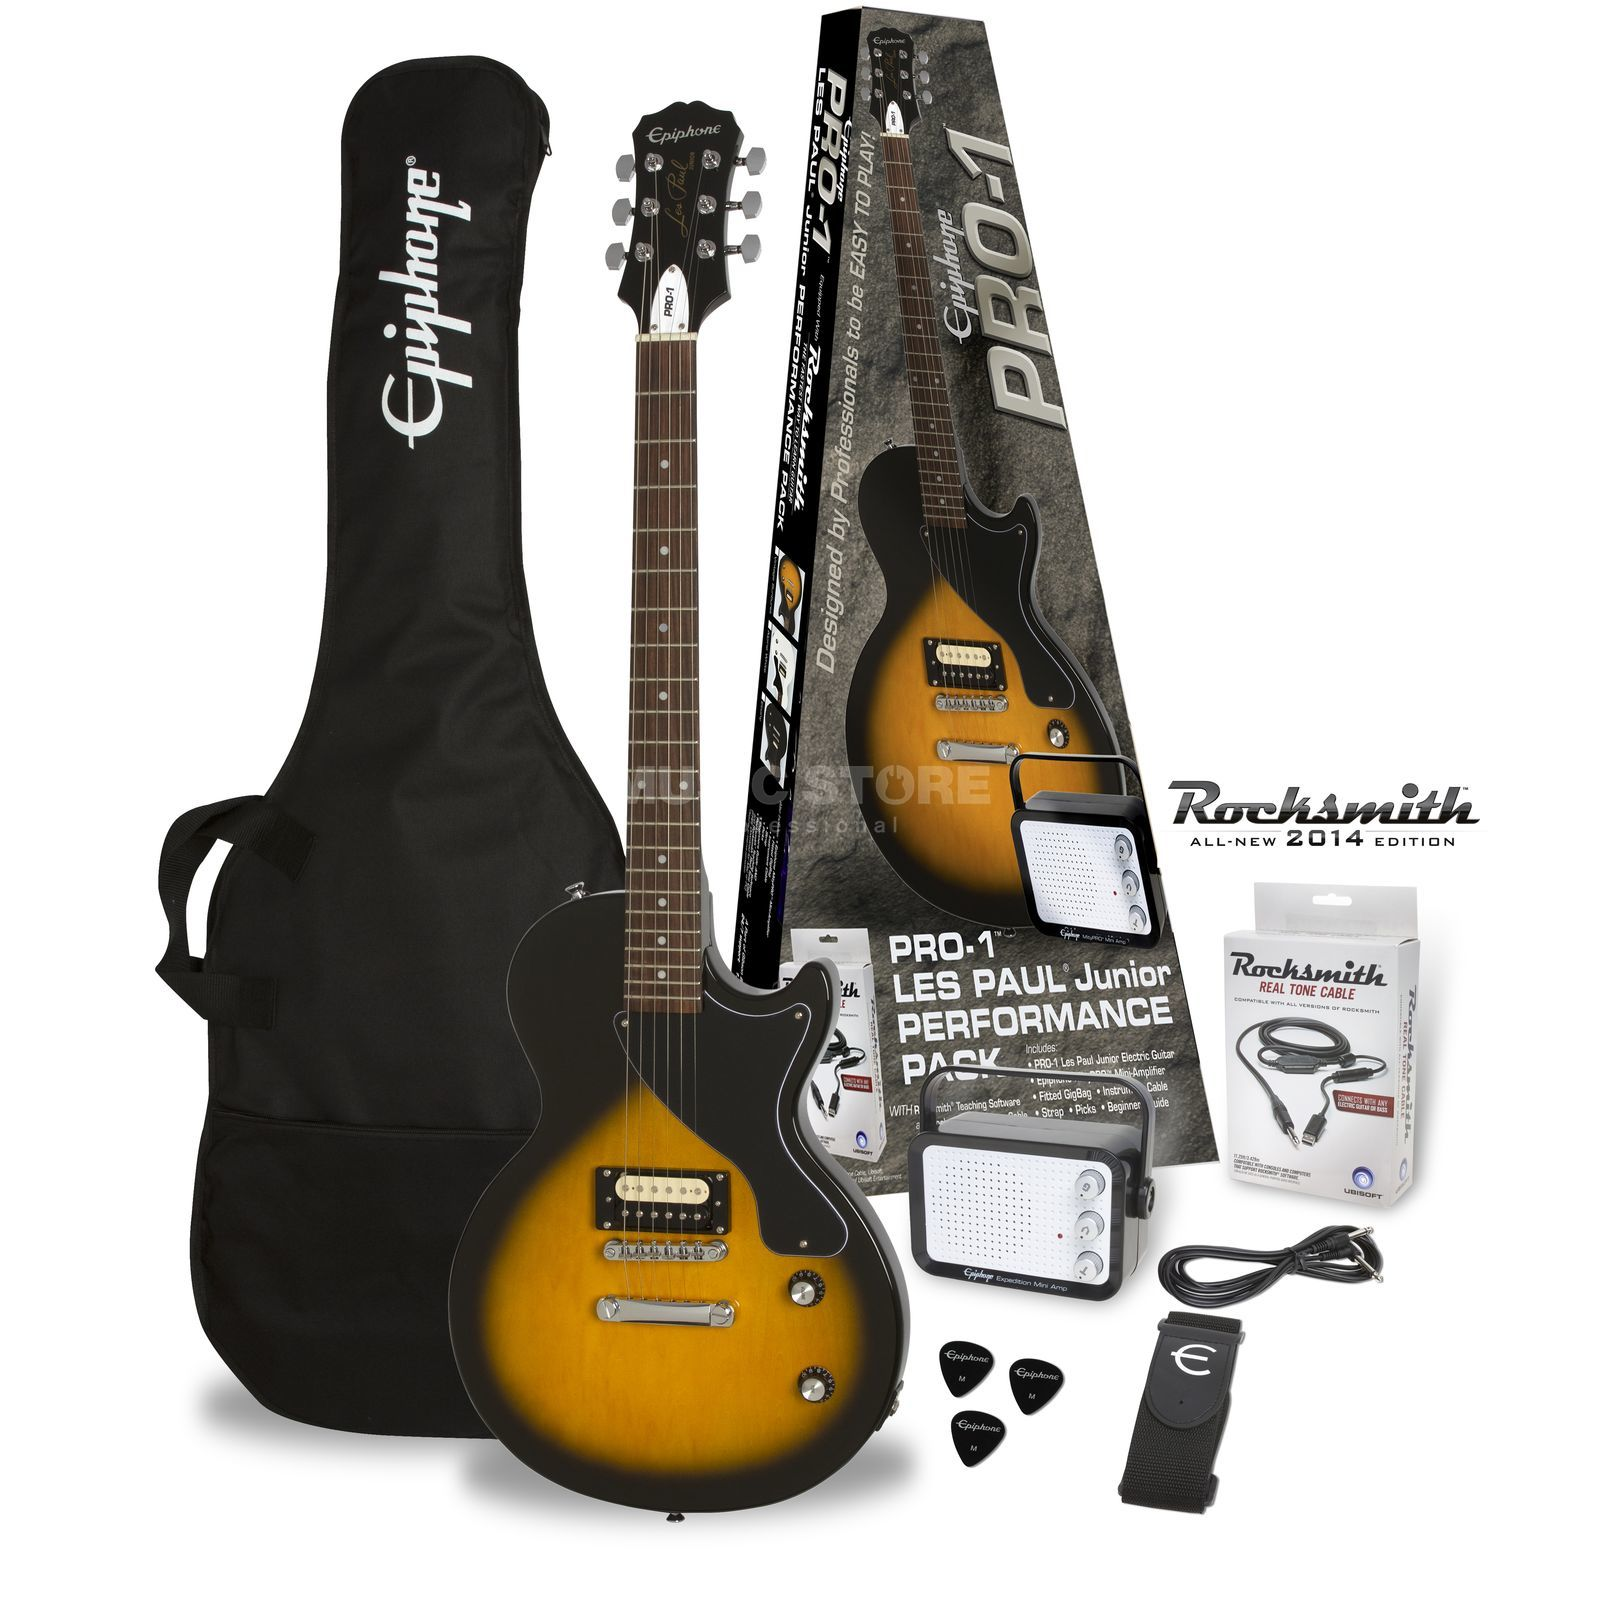 Epiphone PRO-1 Les Paul Junior Performance Pack Vintage Sunburst Produktbild